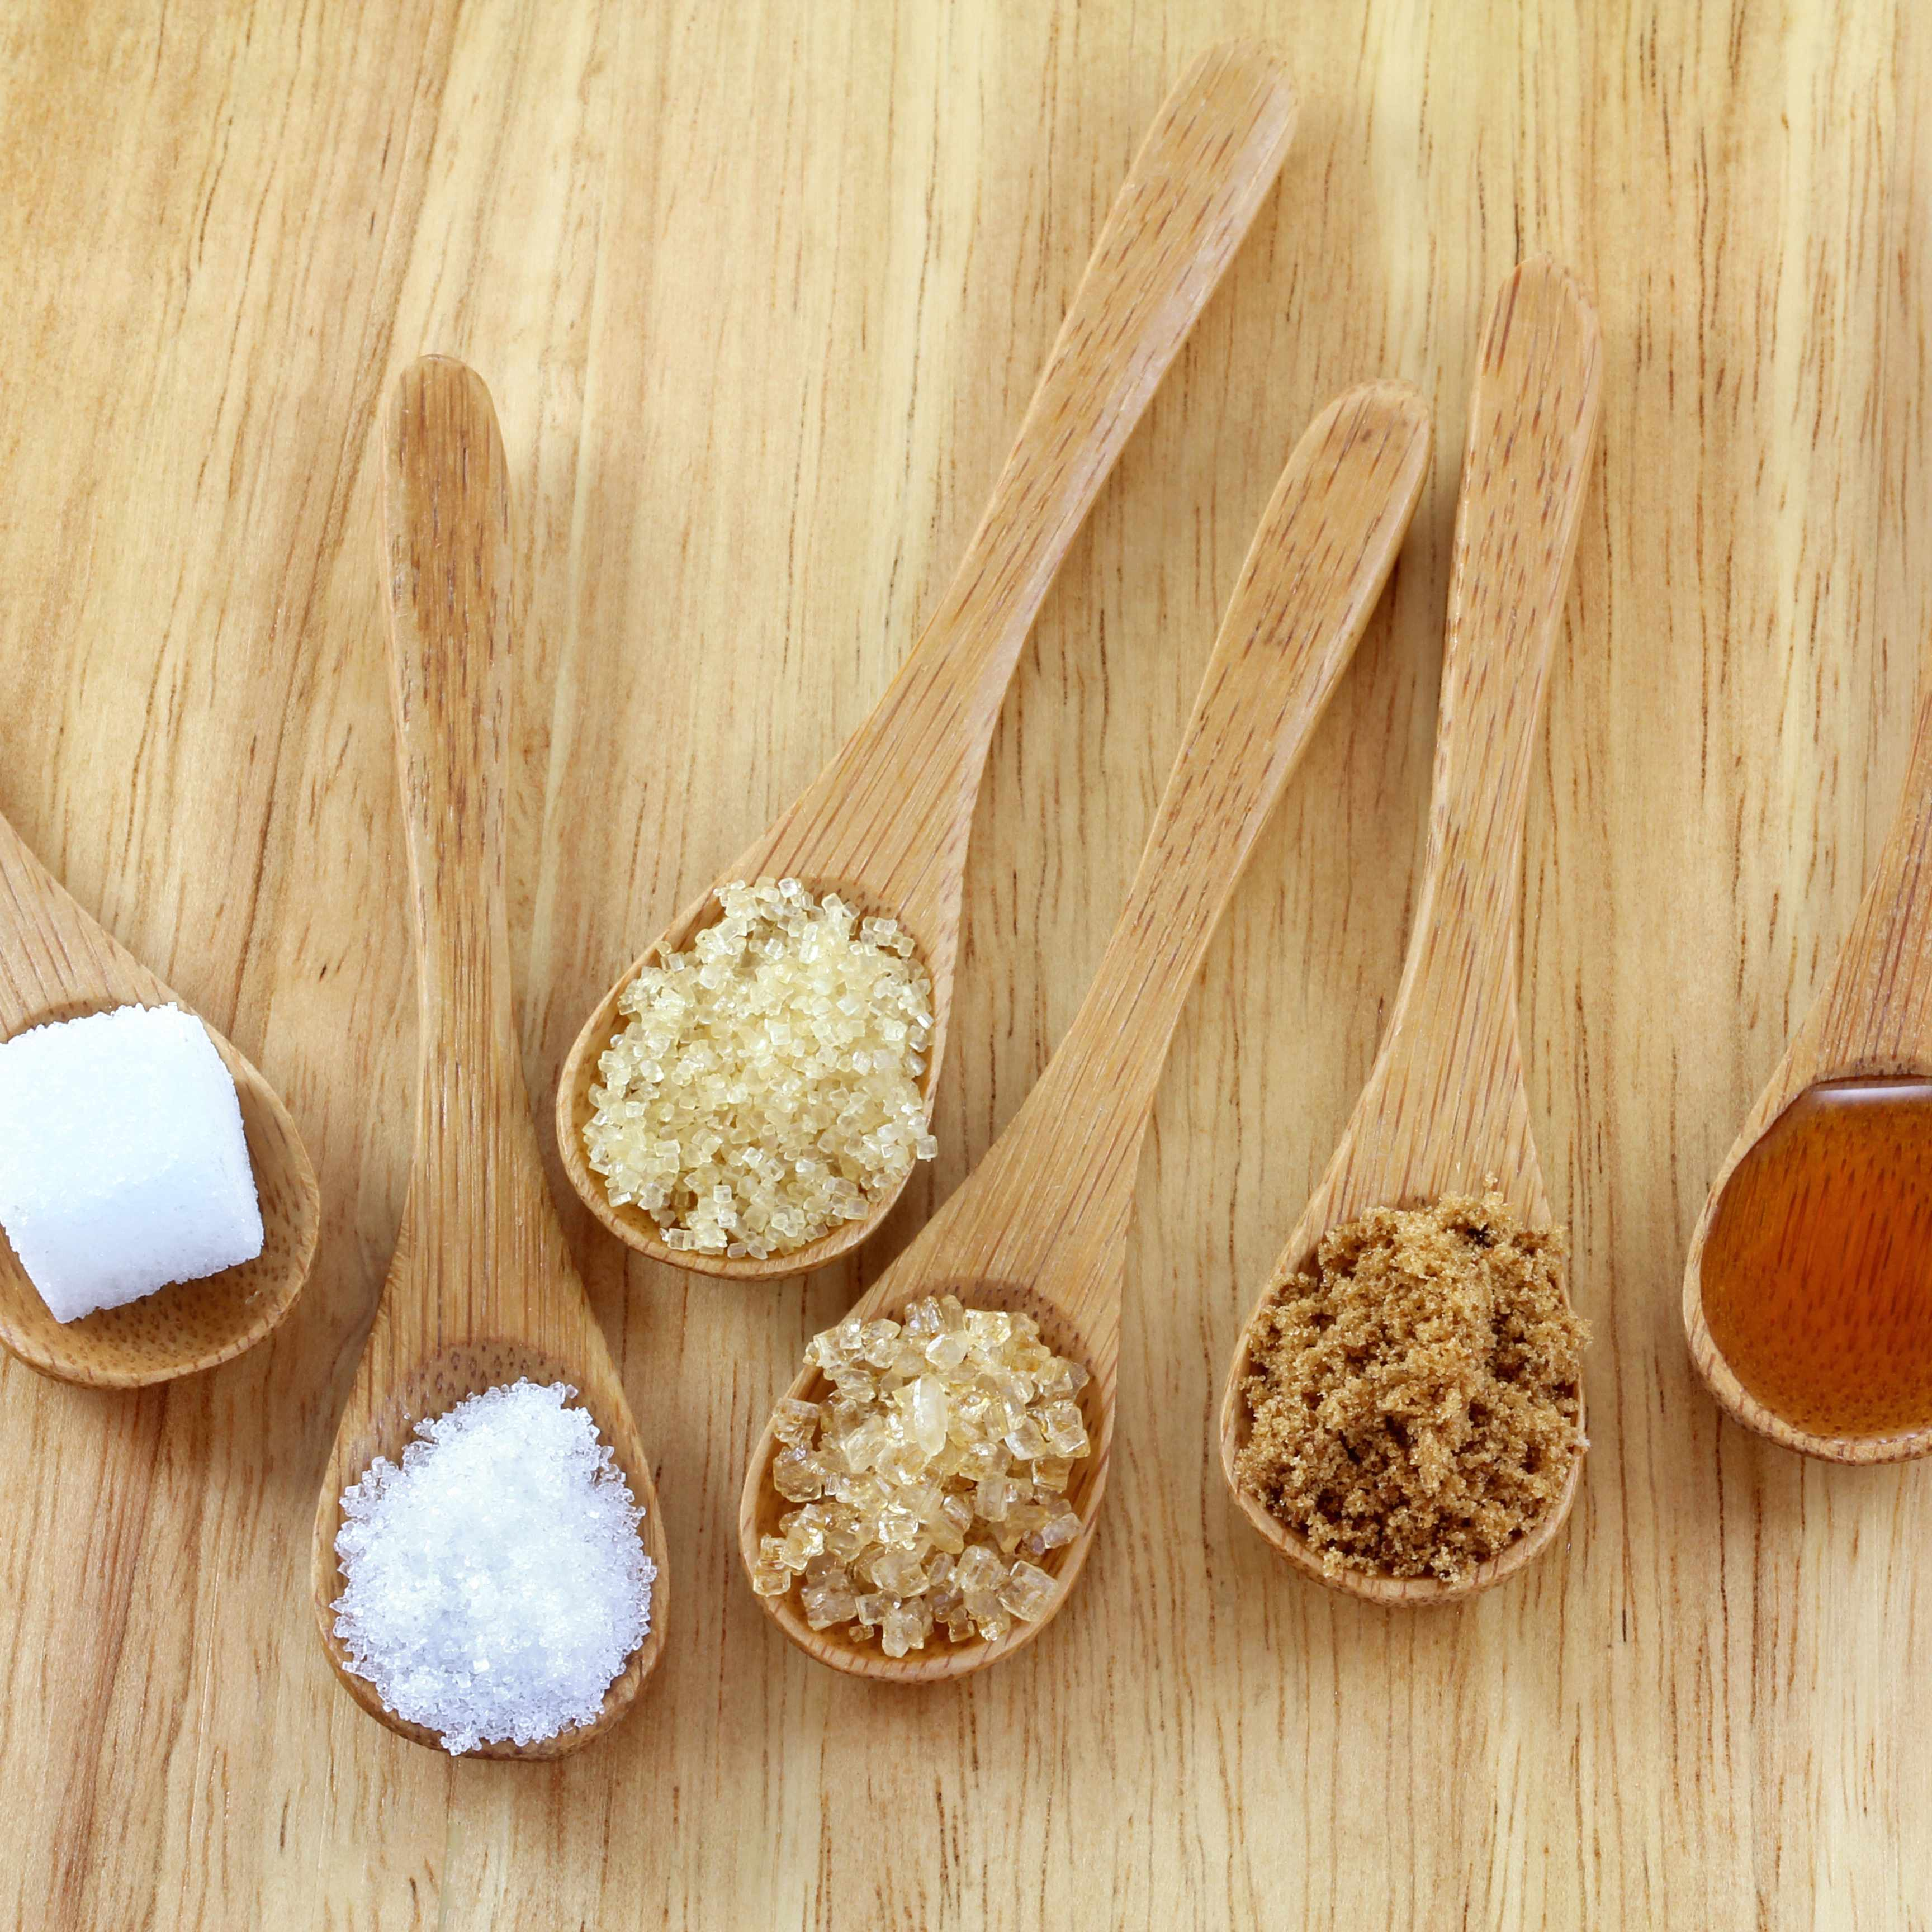 several wooden spoons full of different types of sugar, on a wooden tabletop